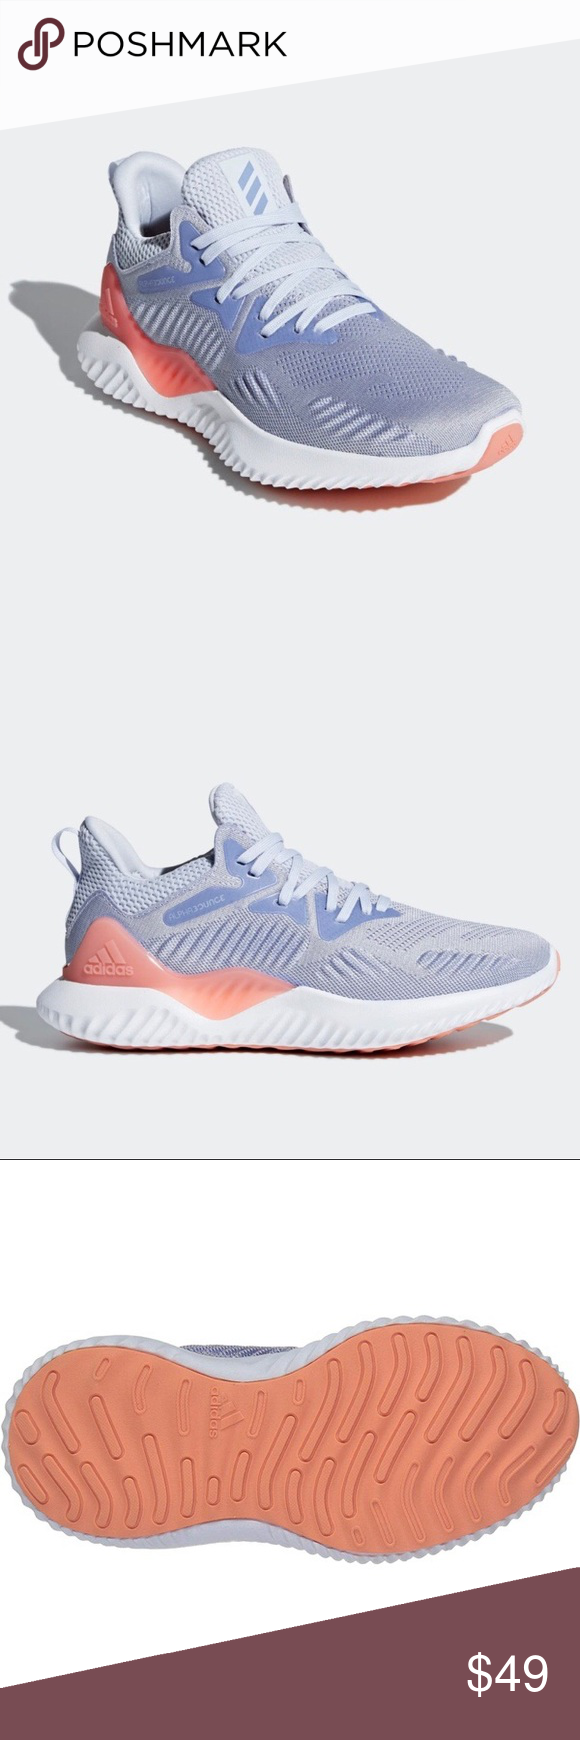 c8ffb99c1 NEW adidas Alphabounce Beyond Unisex Shoes Brand new with tags adidas  Alphabounce Beyond running shoes in